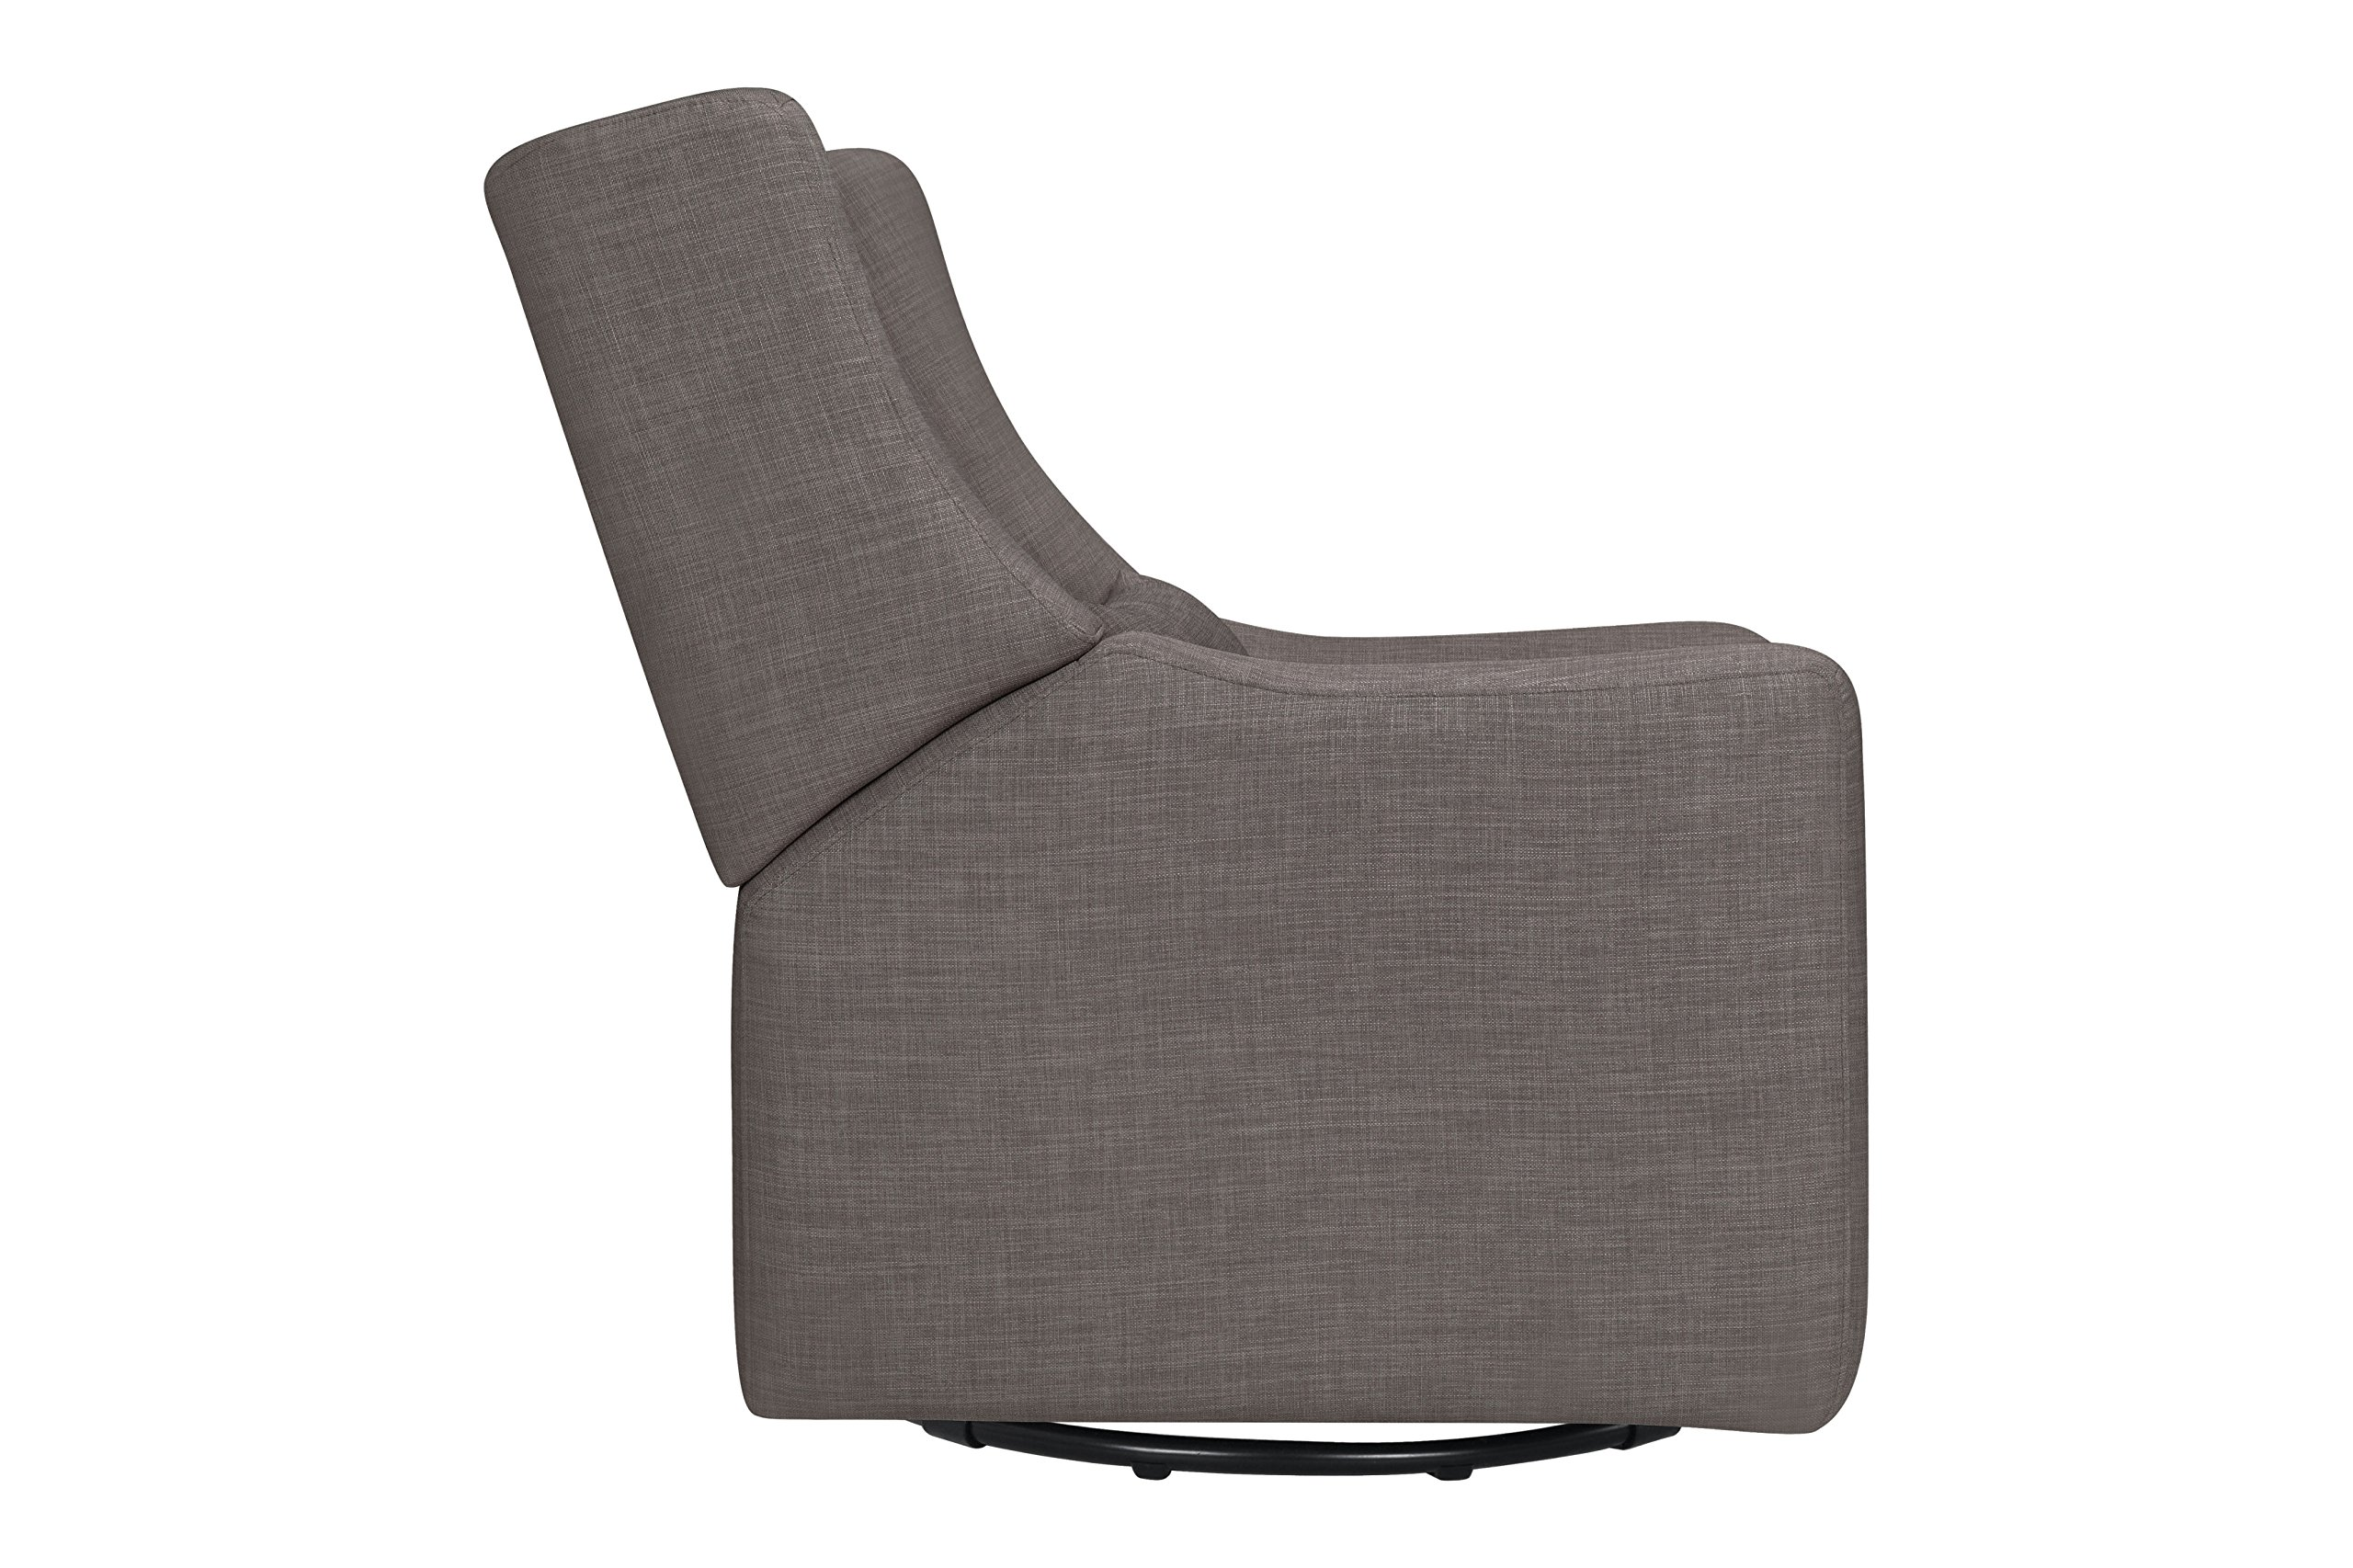 Babyletto Kiwi Electronic Recliner and Swivel Glider with USB Port, Grey Tweed by babyletto (Image #8)